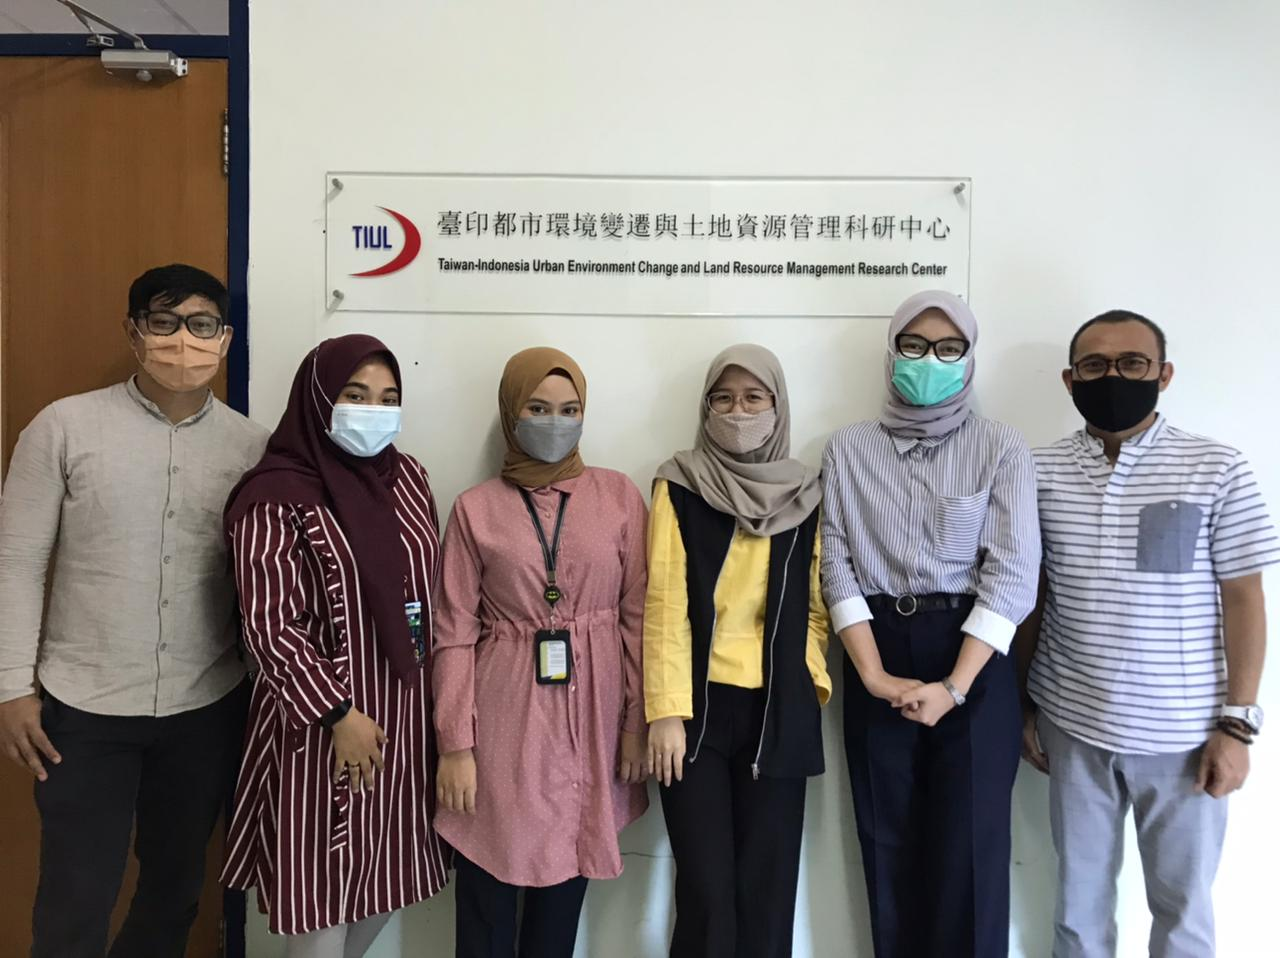 Taiwan-Indonesia Research Center Office In Jakarta As A Concrete Collaboration Outcome Of University Al-Azhar Of Indonesia And National Taipei University